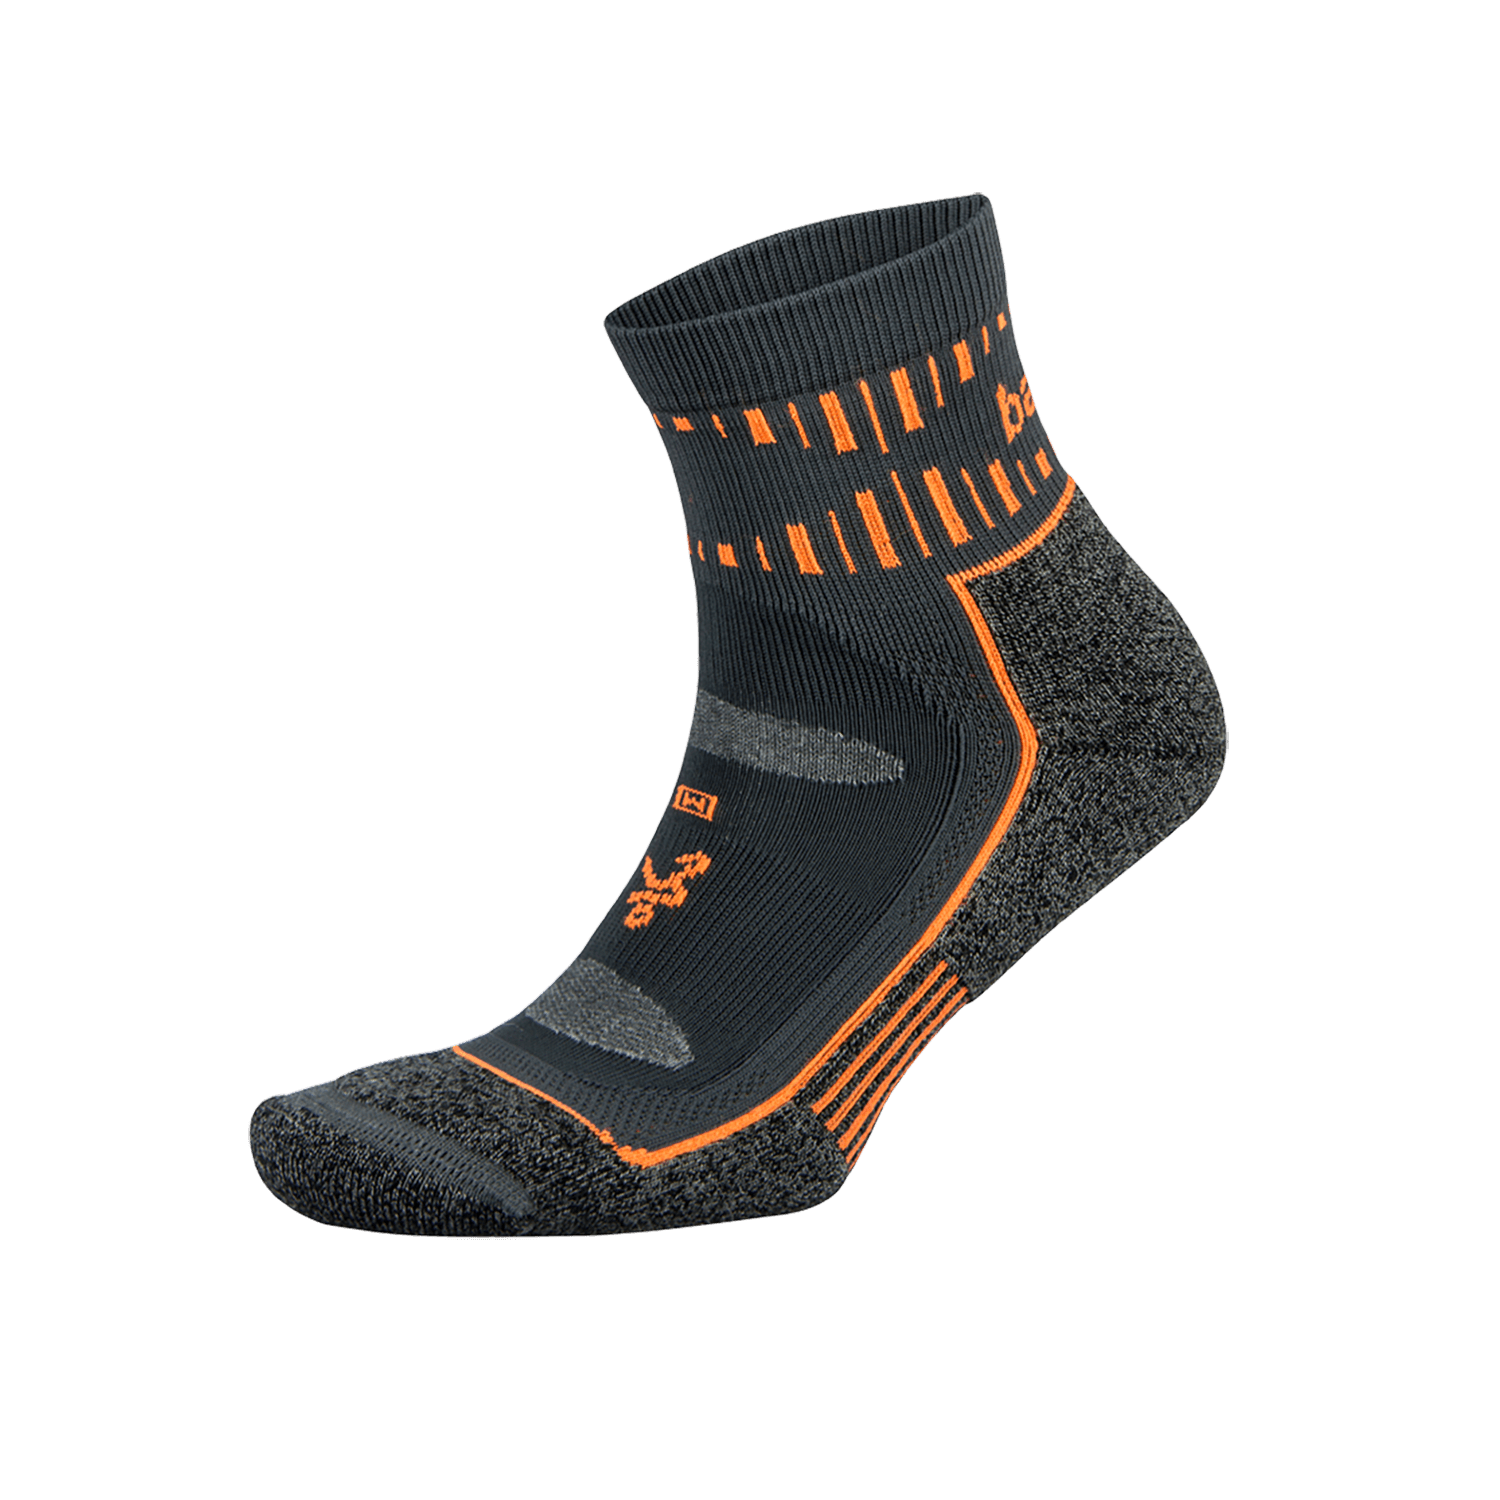 Blister Resist Quarter Running Sock: Grey/Orange